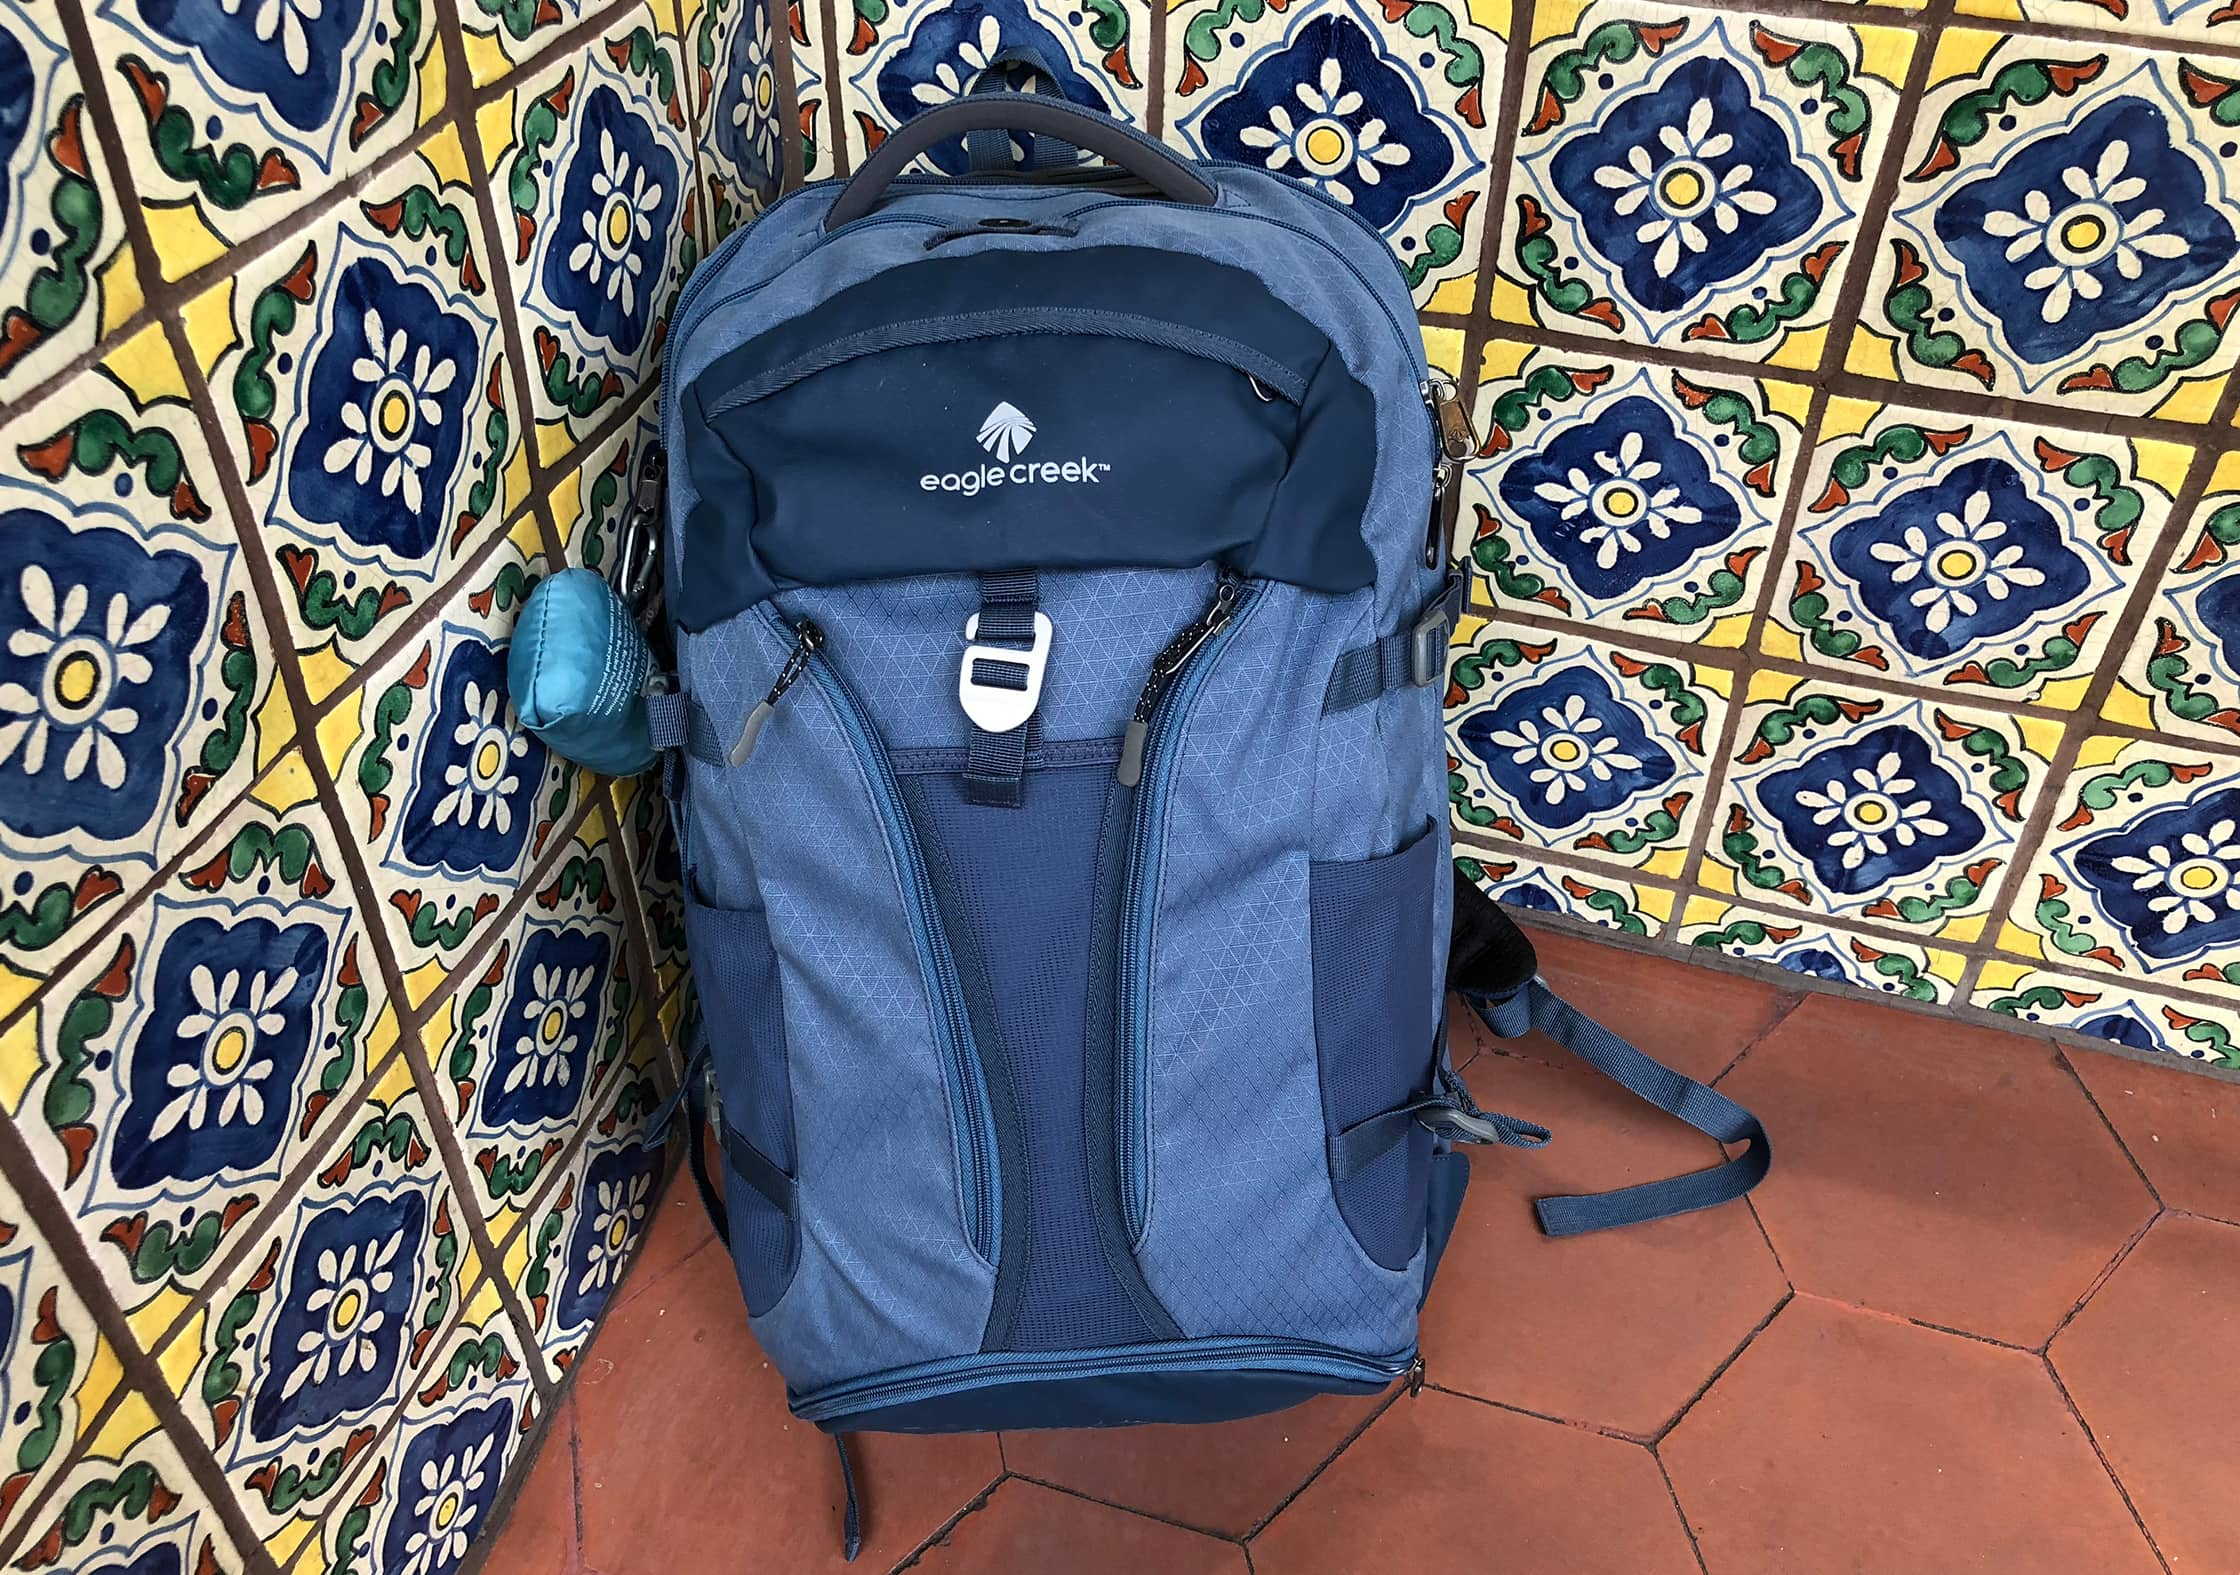 Eagle Creek Global Companion 40L Travel Pack in Santa Fe, New Mexico